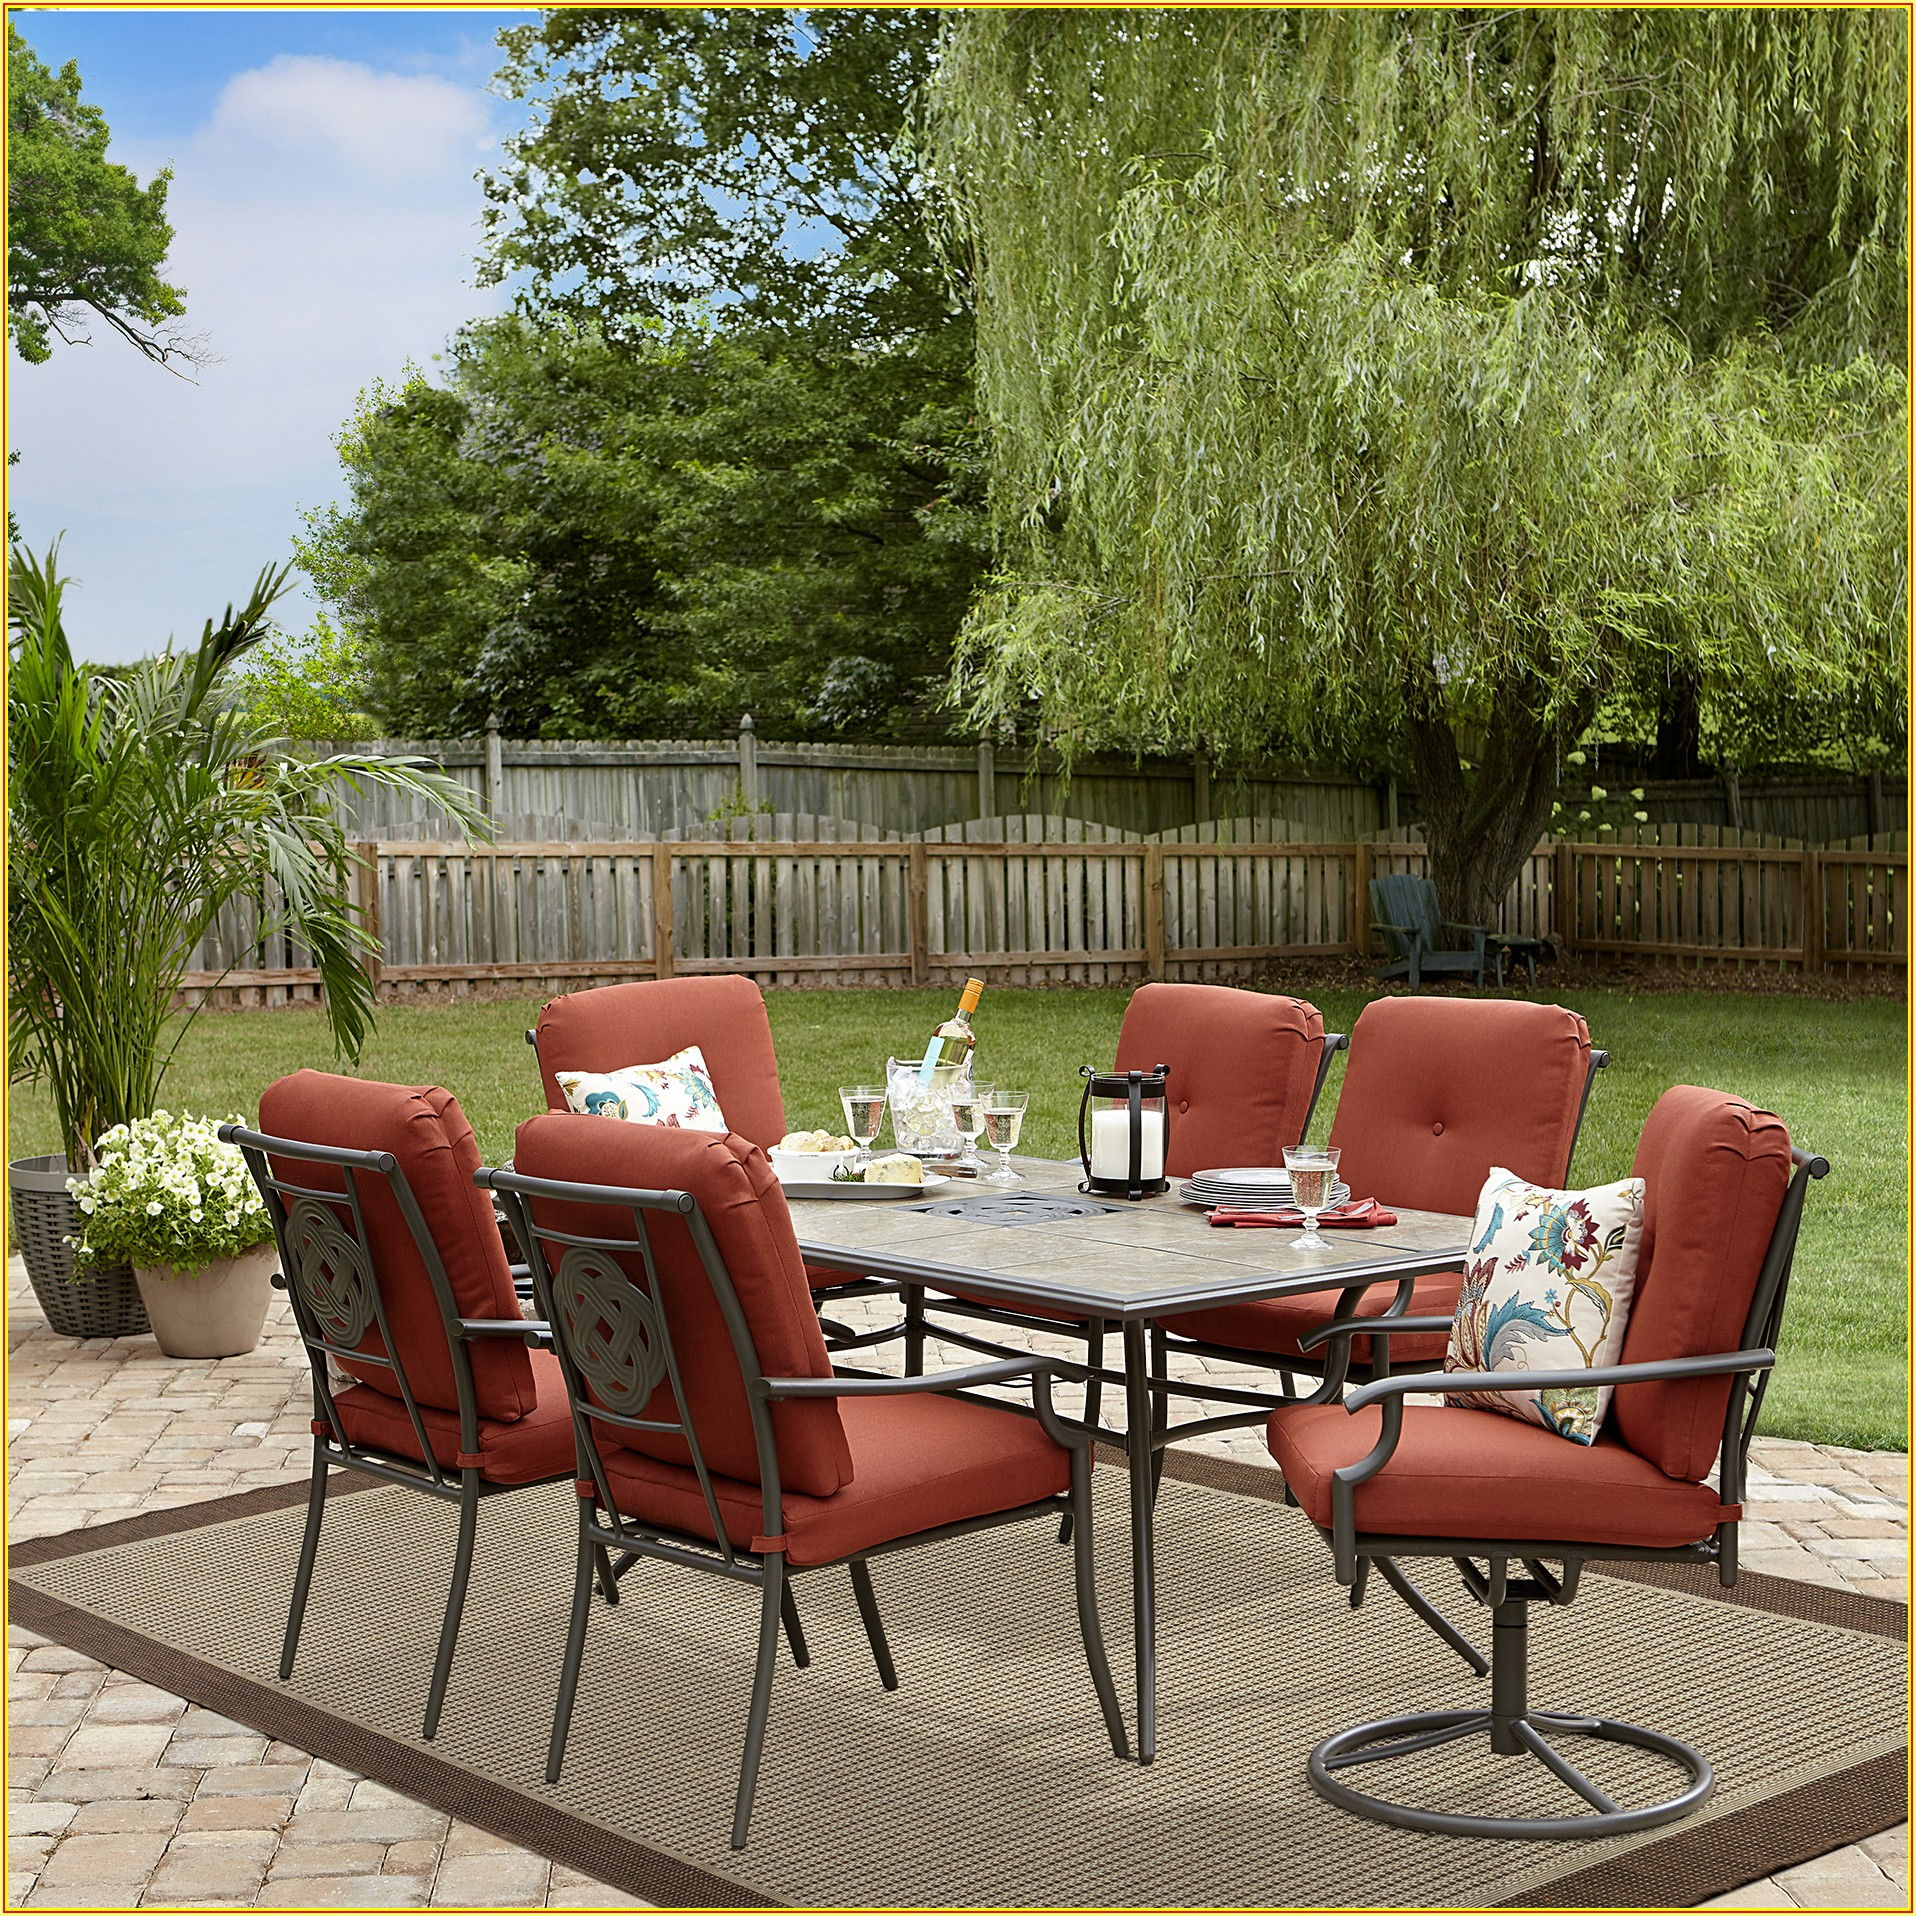 Garden Oasis Patio Furniture Manufacturer